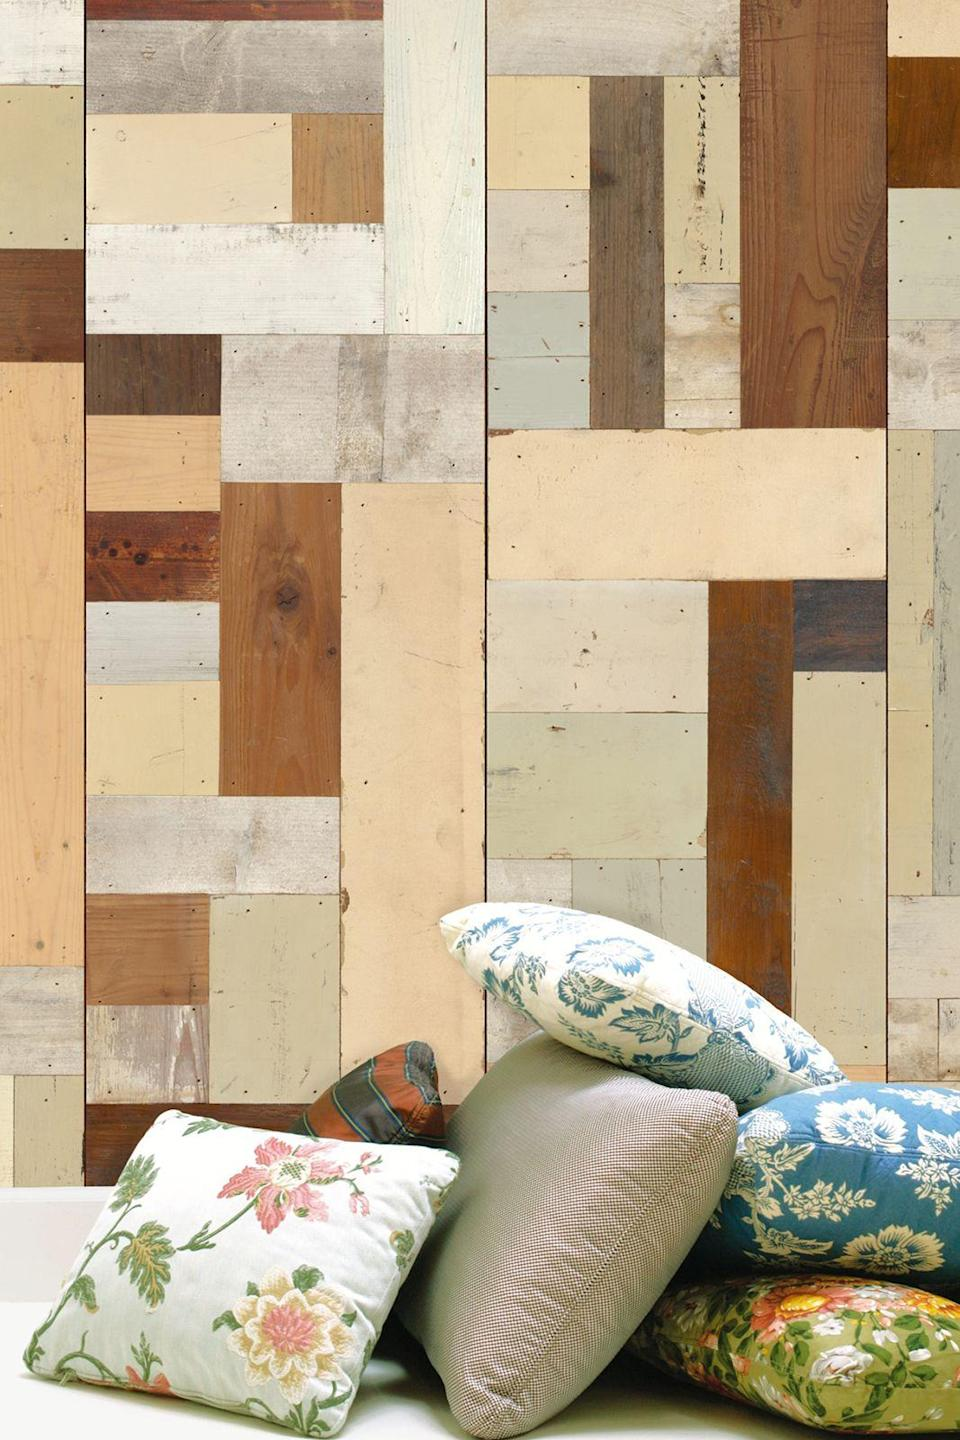 """<p>Less stripped-back than concrete but still with a whiff of the industrial, this scrap wood design has a warm and inviting feel thanks to its homespun look. The palette of different timbers and neutral tones makes for a flattering backdrop – try it in a bedroom or living room for a wood-cabin vibe.</p><p><strong>NLXL</strong> Scrap Wood Wallpaper in PHE-06, £199 per 9 metre roll, available at <a href=""""http://www.johnlewis.com/nlxl-scrap-wood-paste-the-wall-wallpaper/p531257"""" rel=""""nofollow noopener"""" target=""""_blank"""" data-ylk=""""slk:John Lewis"""" class=""""link rapid-noclick-resp"""">John Lewis</a> </p>"""